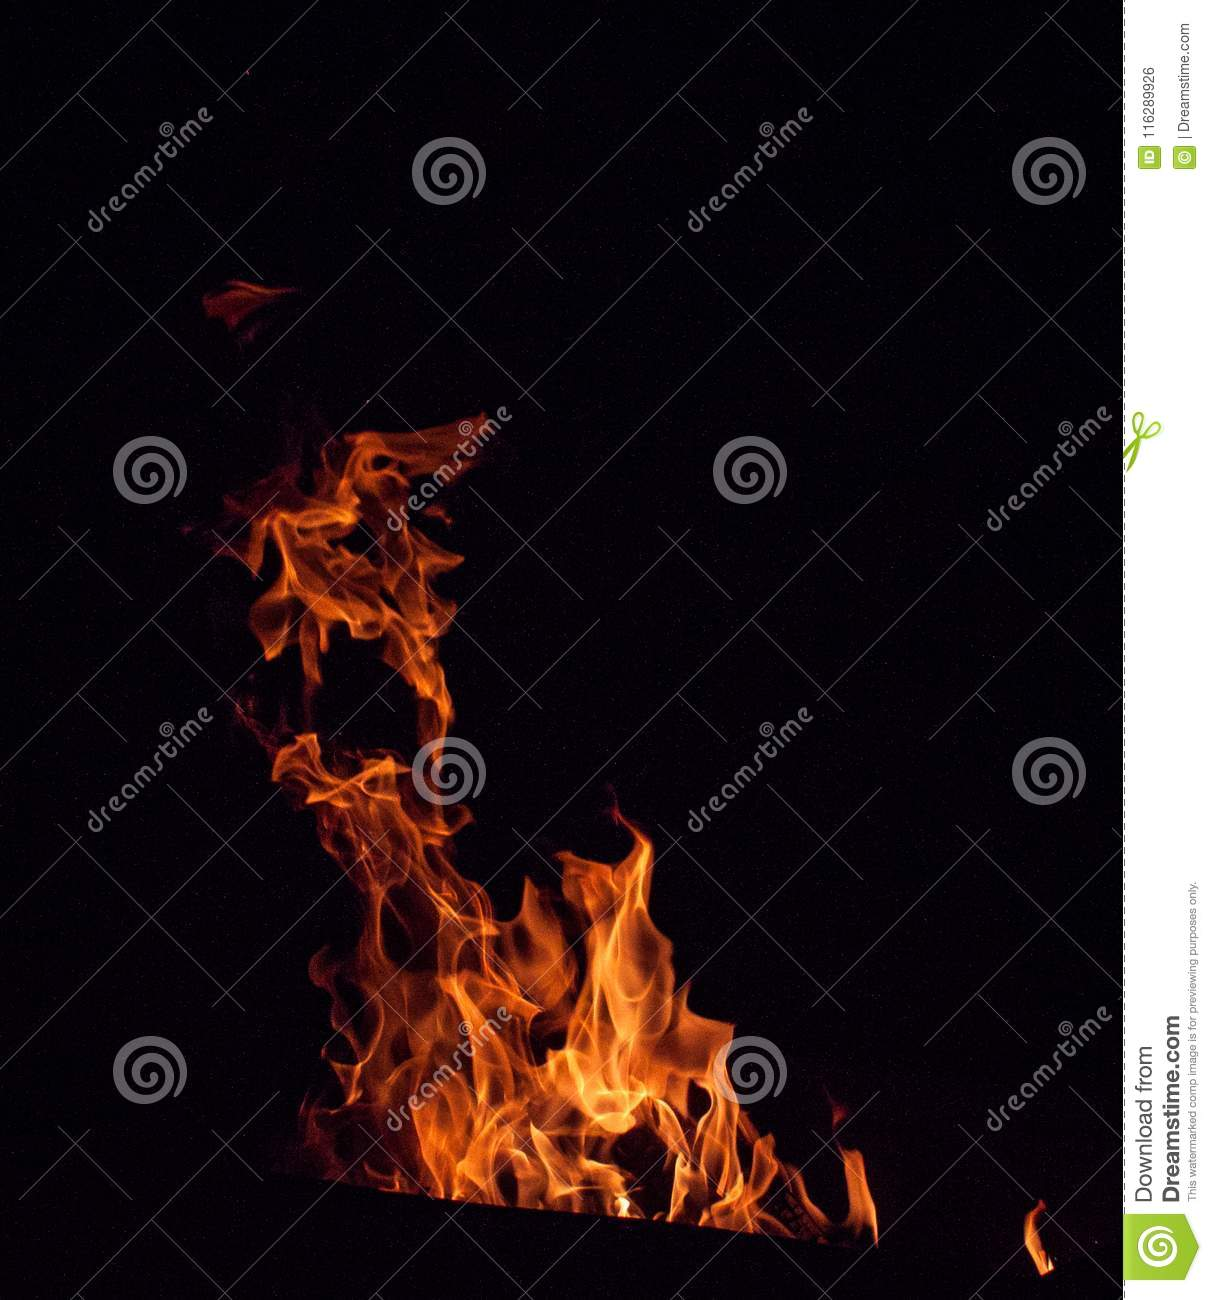 Abstract fire flame with black background